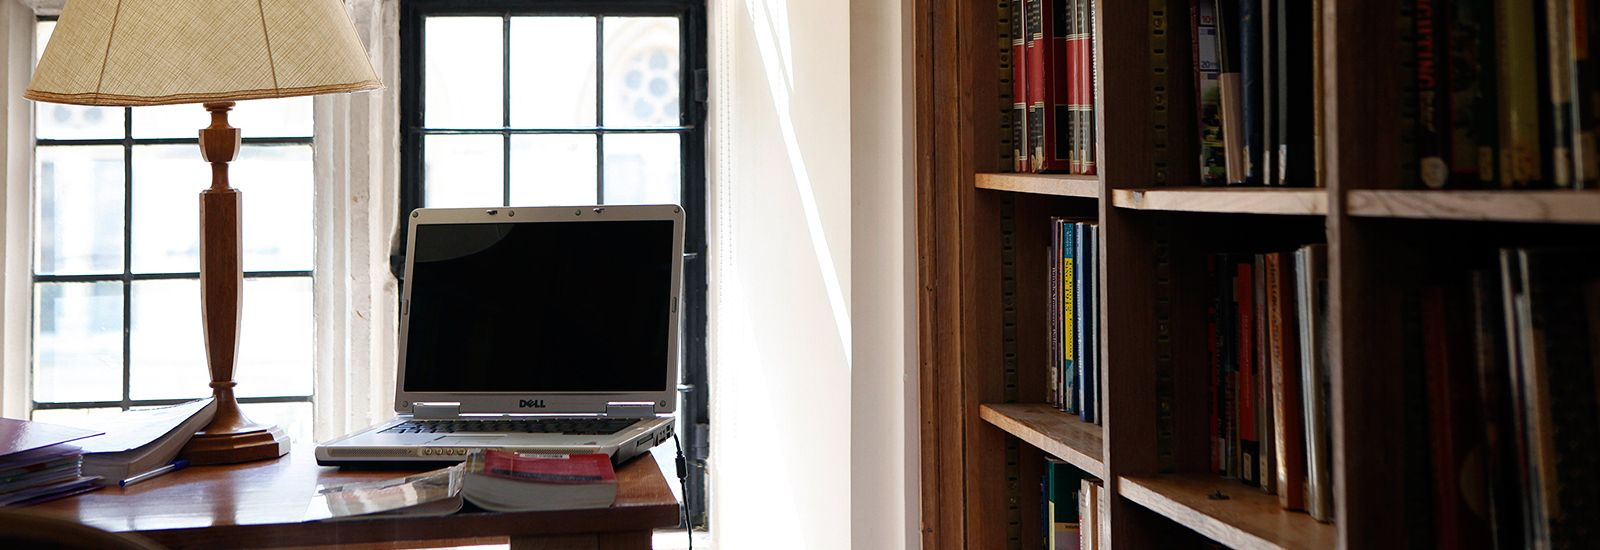 Lamp and laptop on a desk next to a bookcase